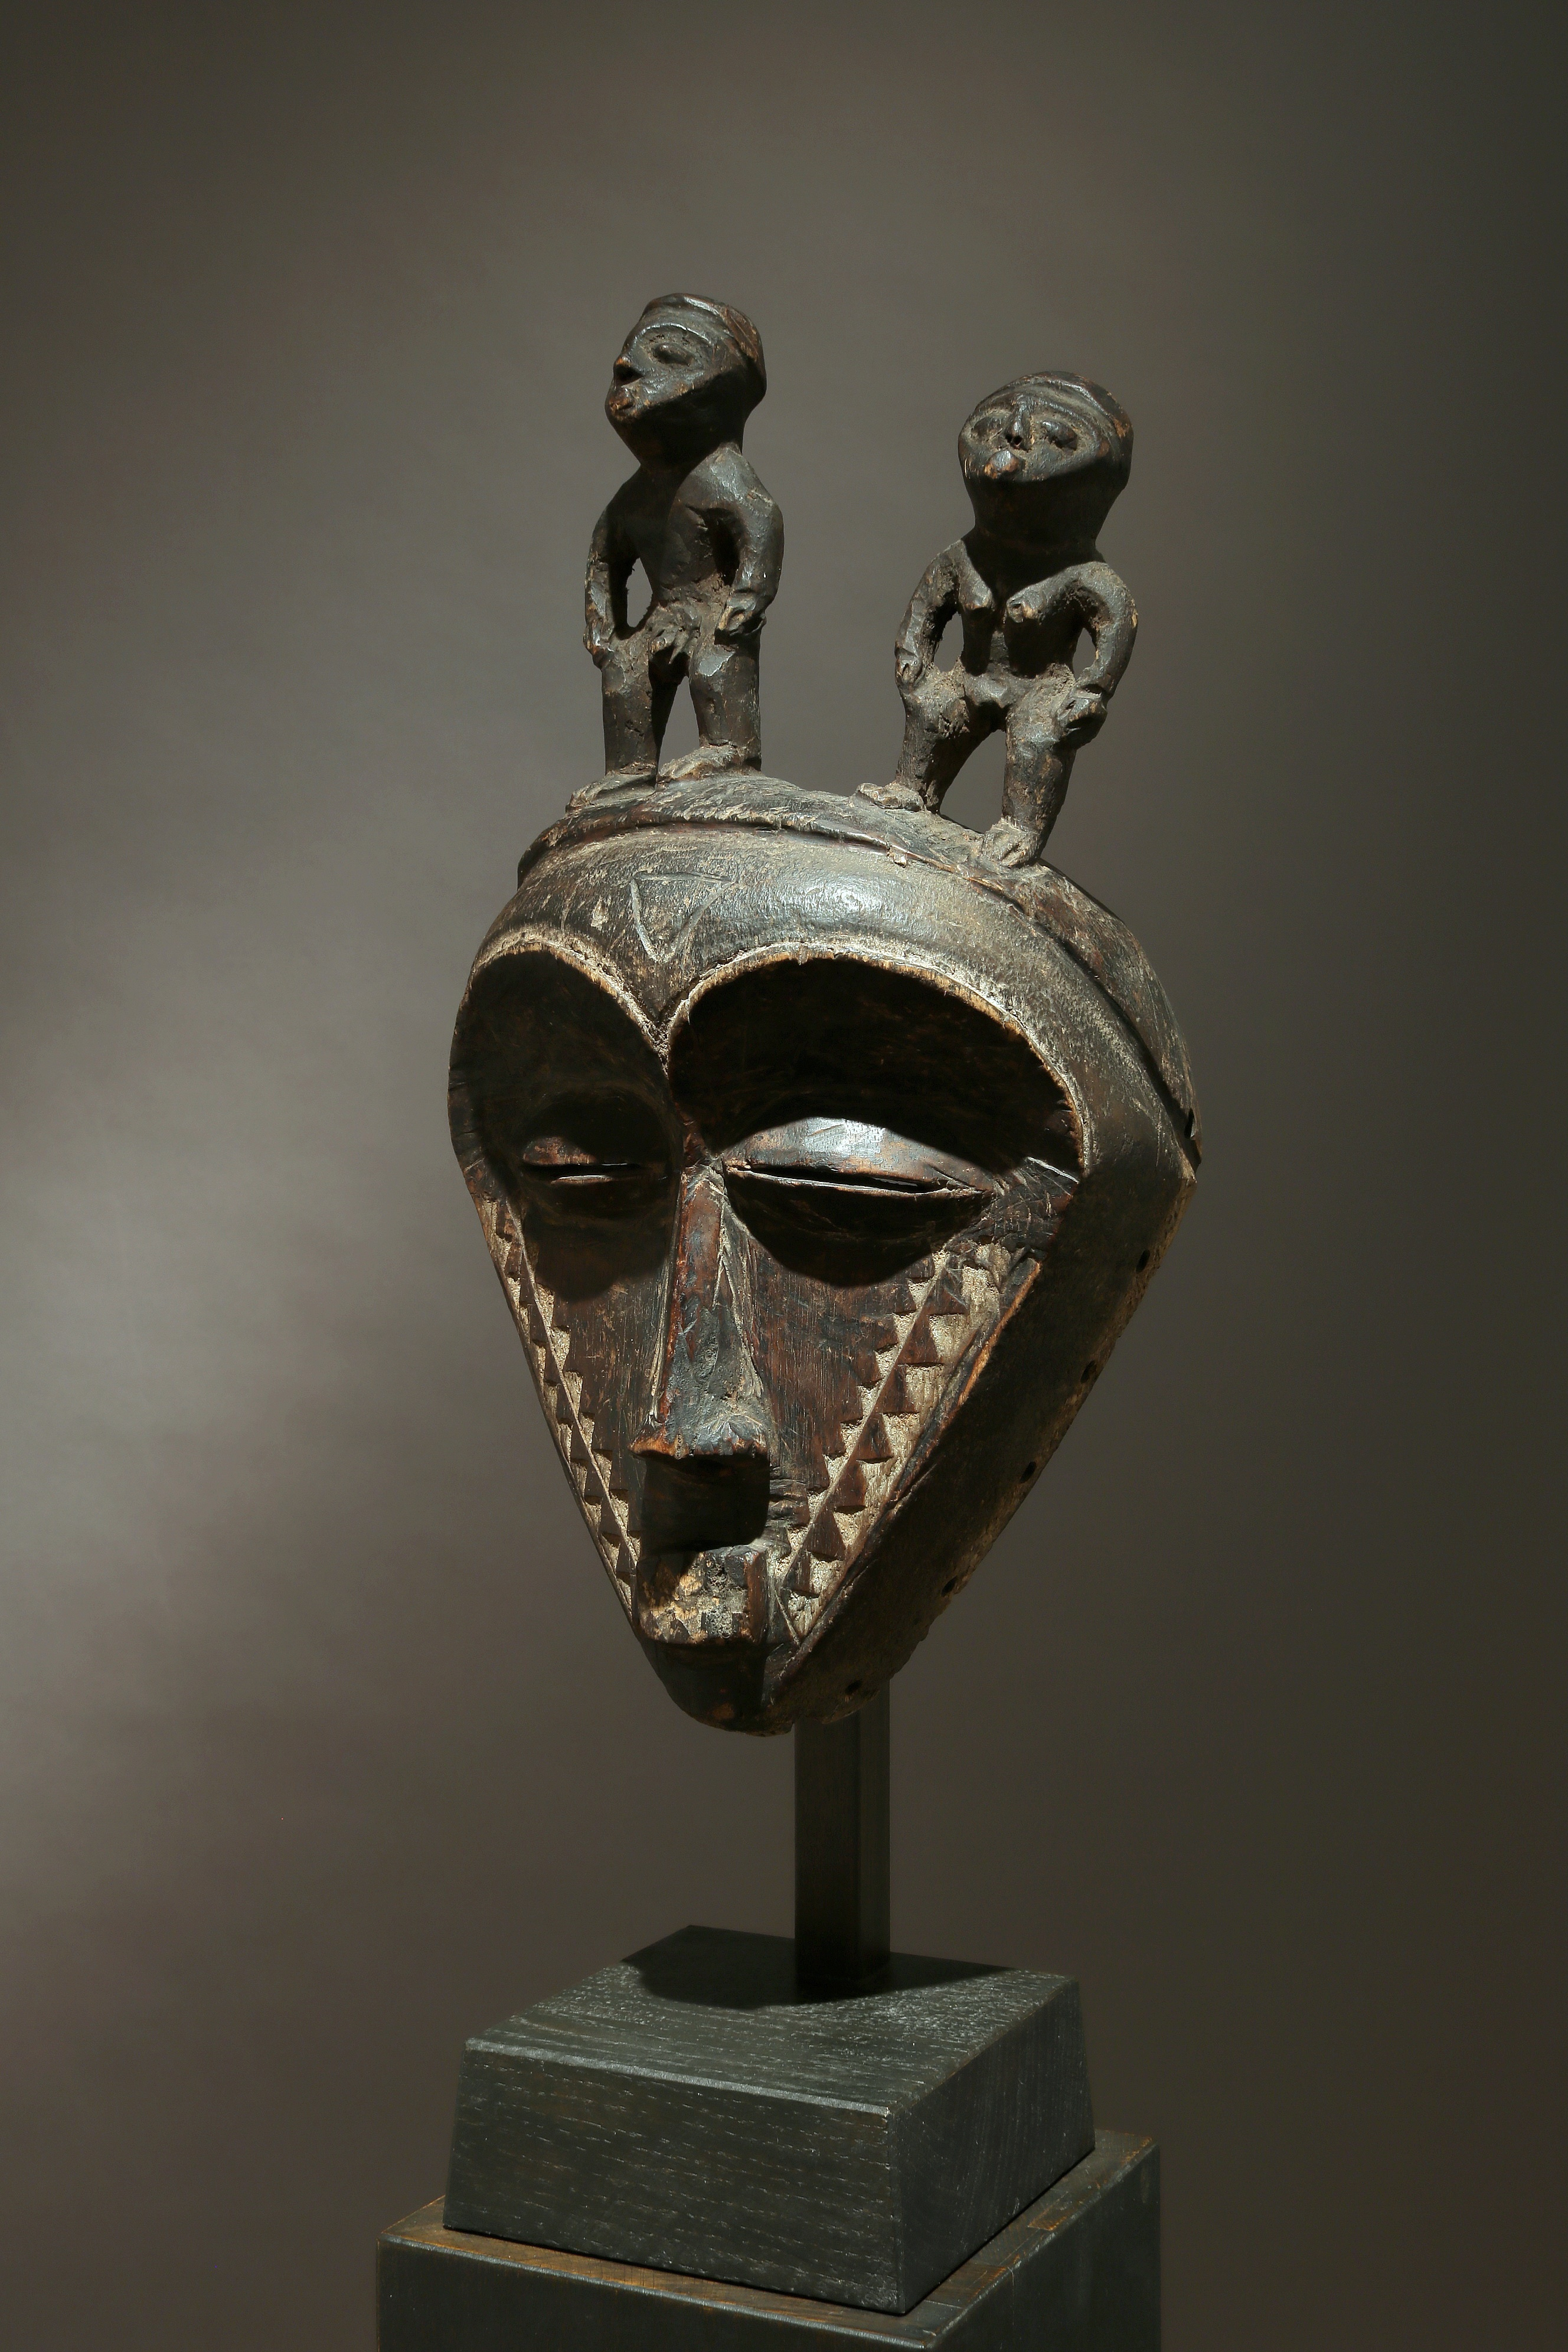 Triangular face mask with figures on top